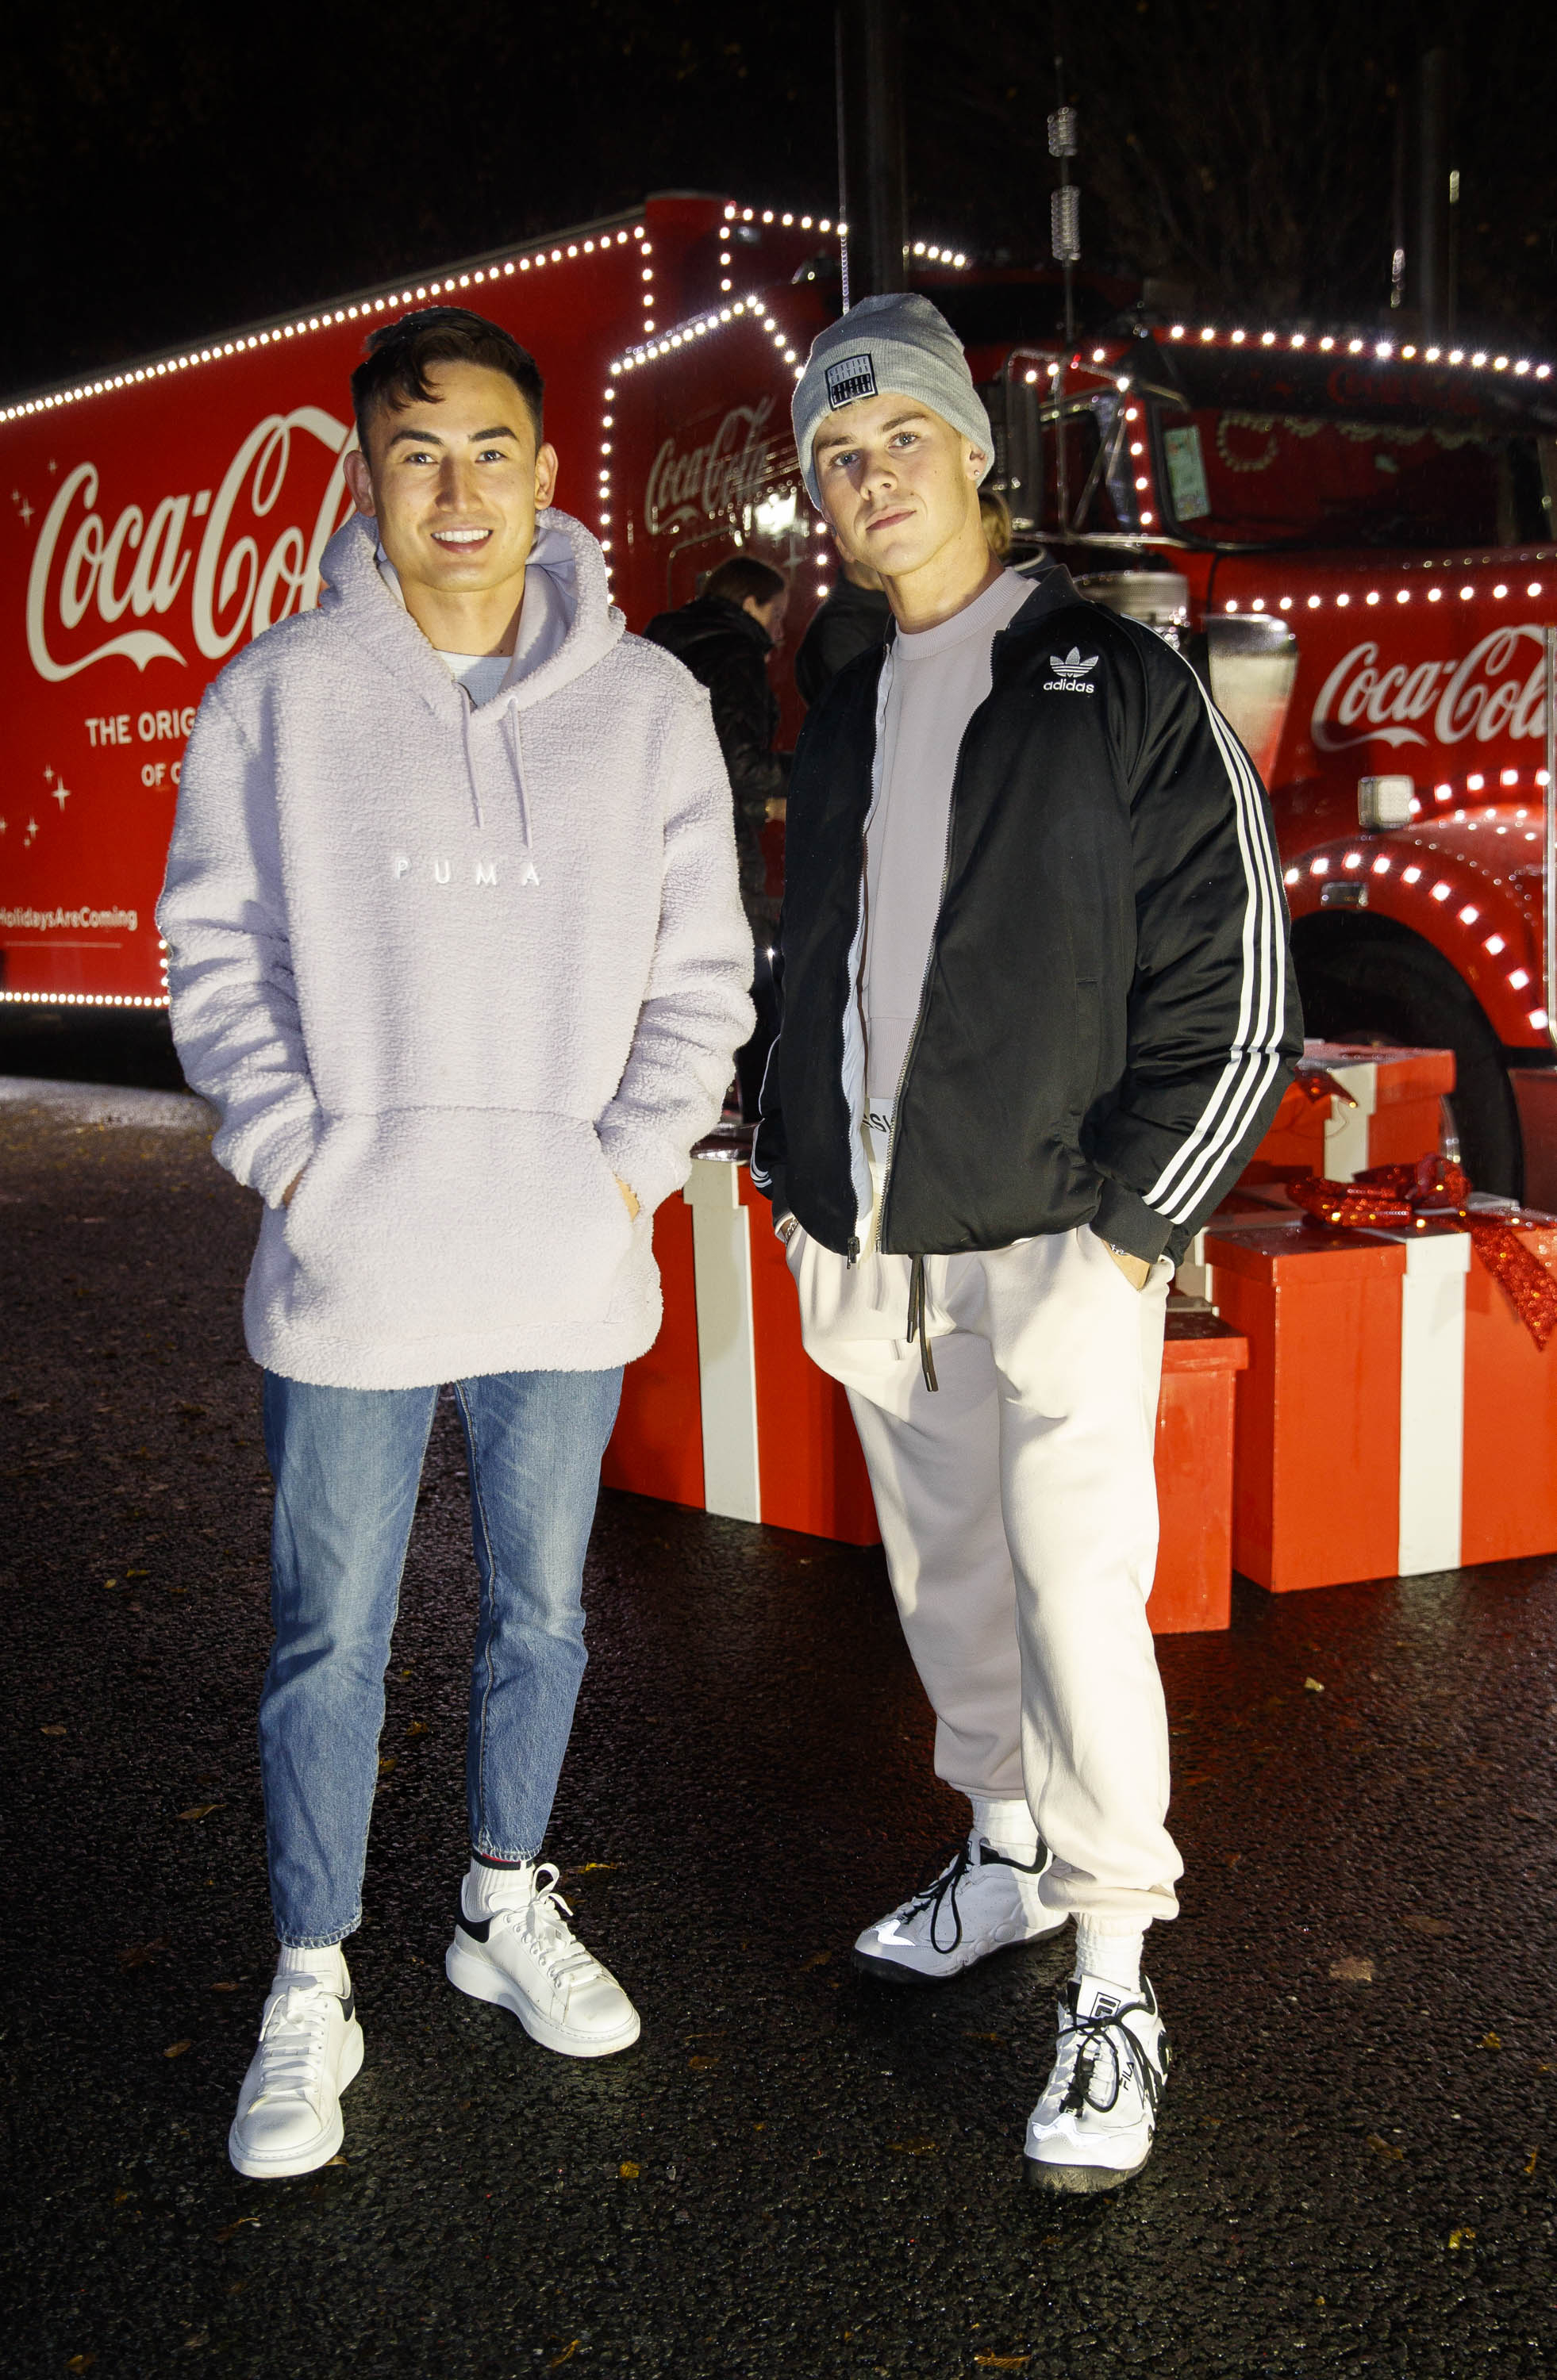 Ashley Farrel and Adam Fogarty pictured at Coca-Cola's Christmas Truck Tour launch which took place Monday 25th November at the RDS, Dublin. Photo: Andres Poveda